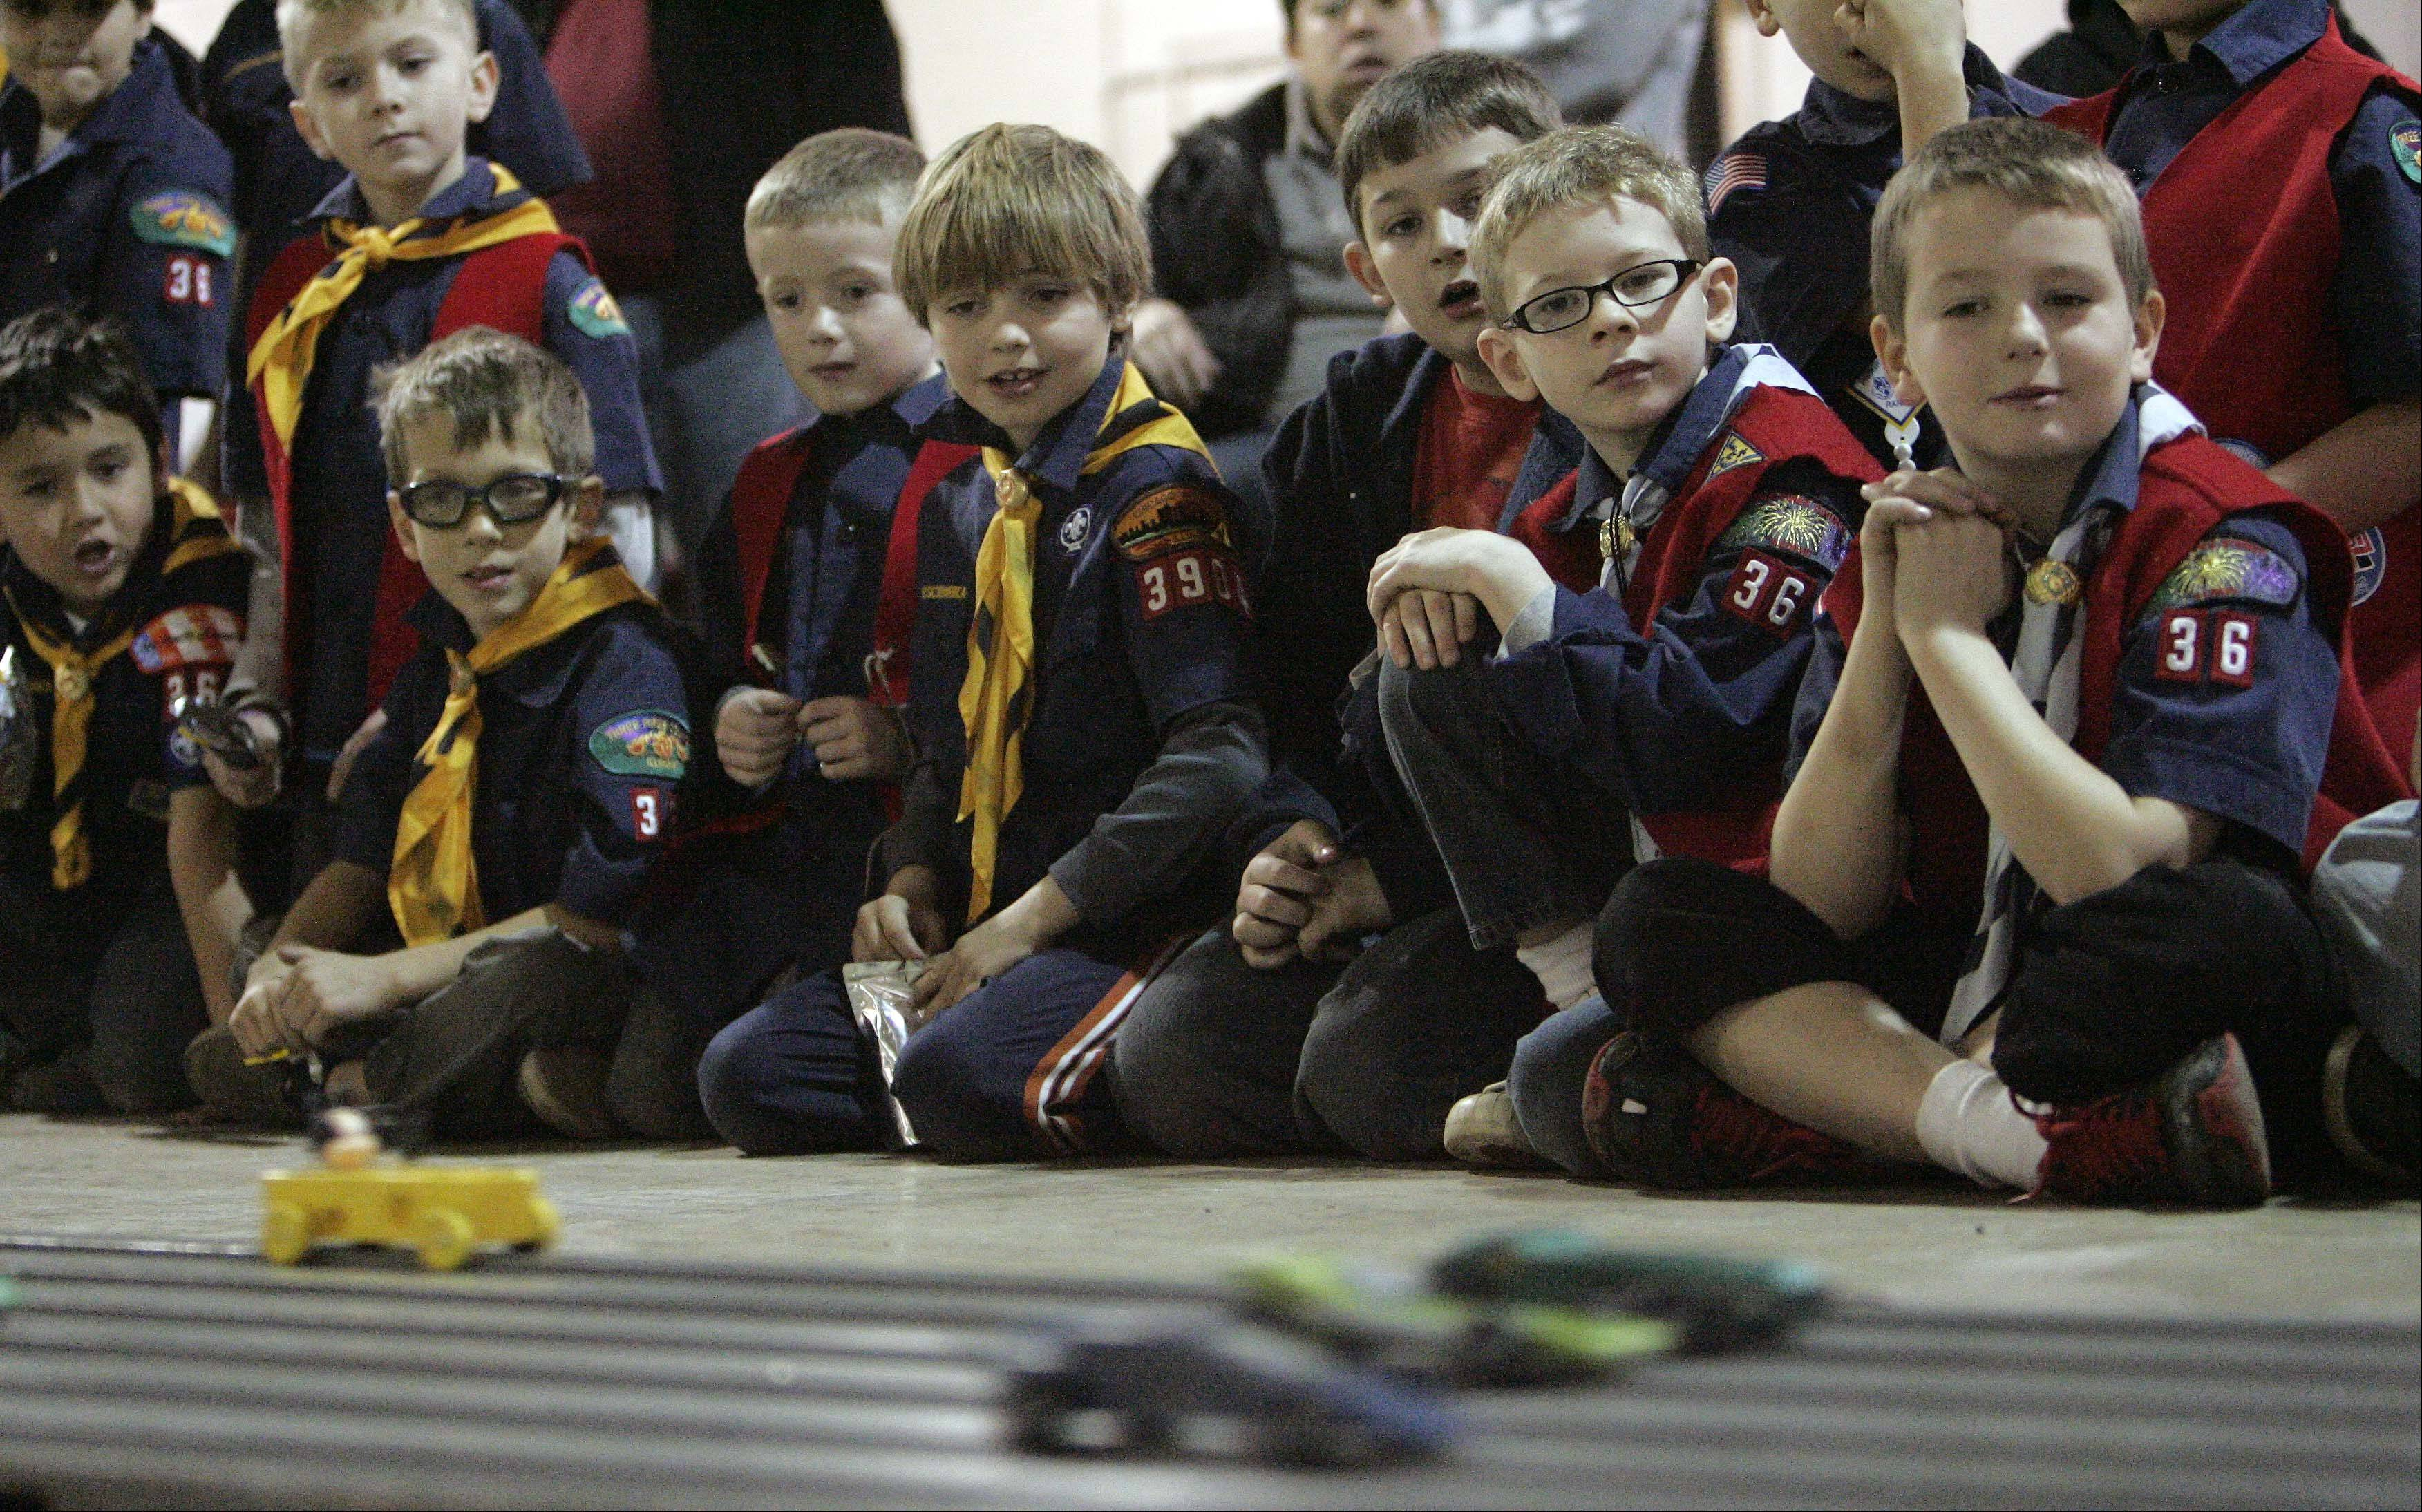 Scouts watch as some of the first races get underway as Cub Scout Pack 36, of West Dundee holds their pinewood derby Saturday at Spring Hill Ford in East Dundee.